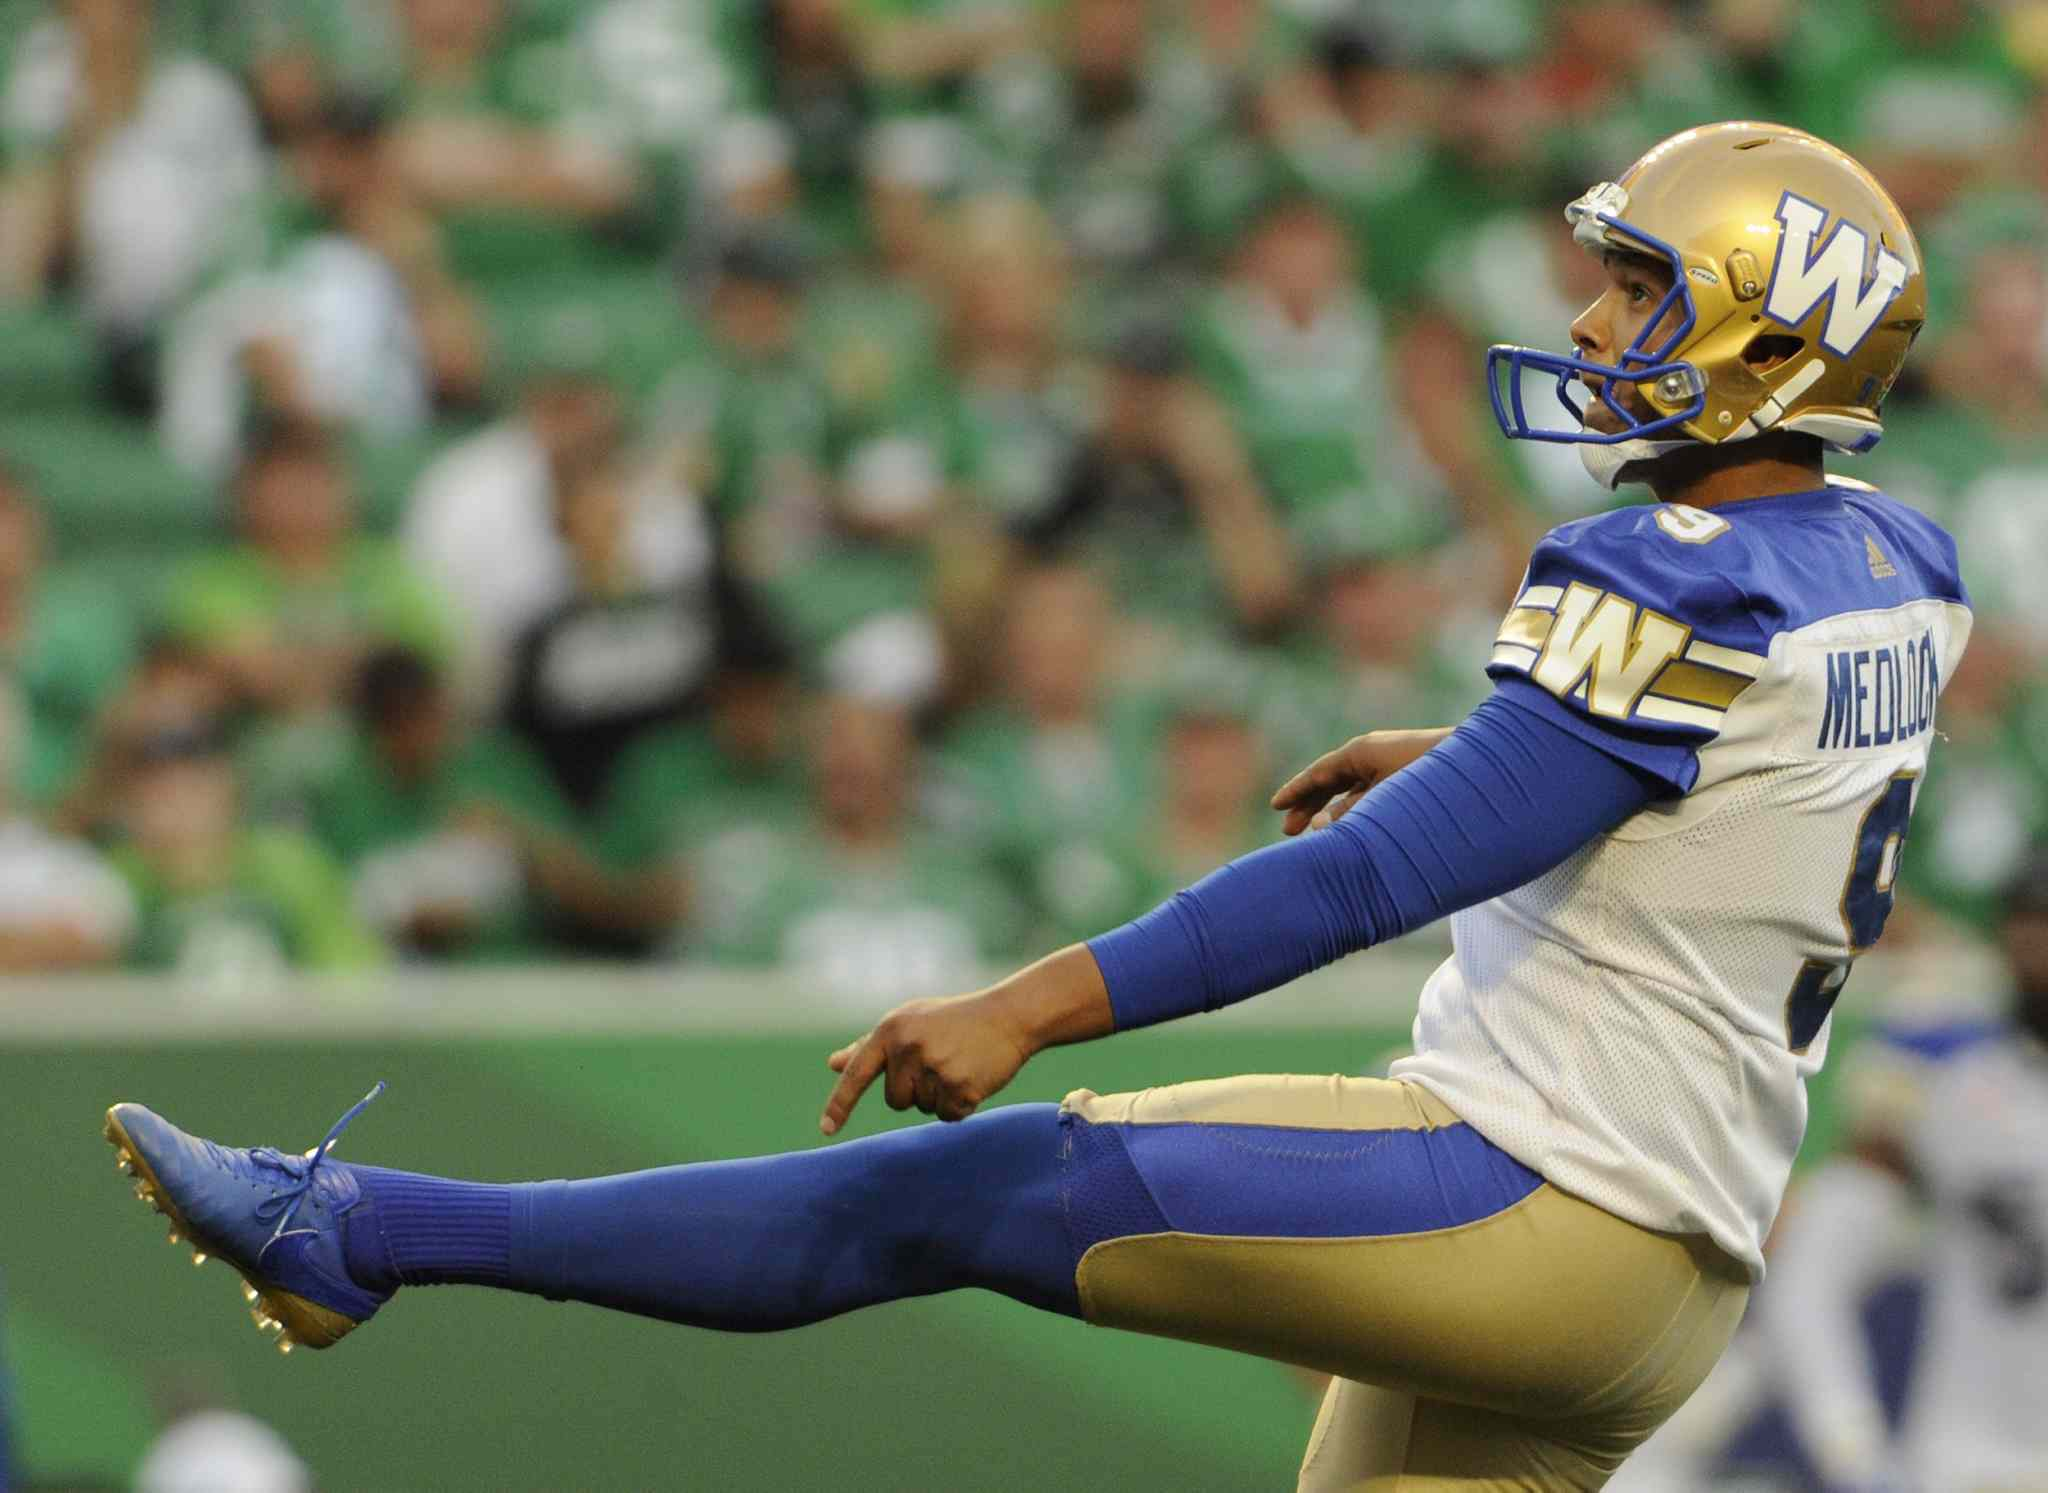 Winnipeg Blue Bombers kicker Justin Medlock boots a field goal during first half CFL action at the brand new Mosaic Stadium against the Saskatchewan Roughriders, in Regina on Saturday, July 1, 2017.